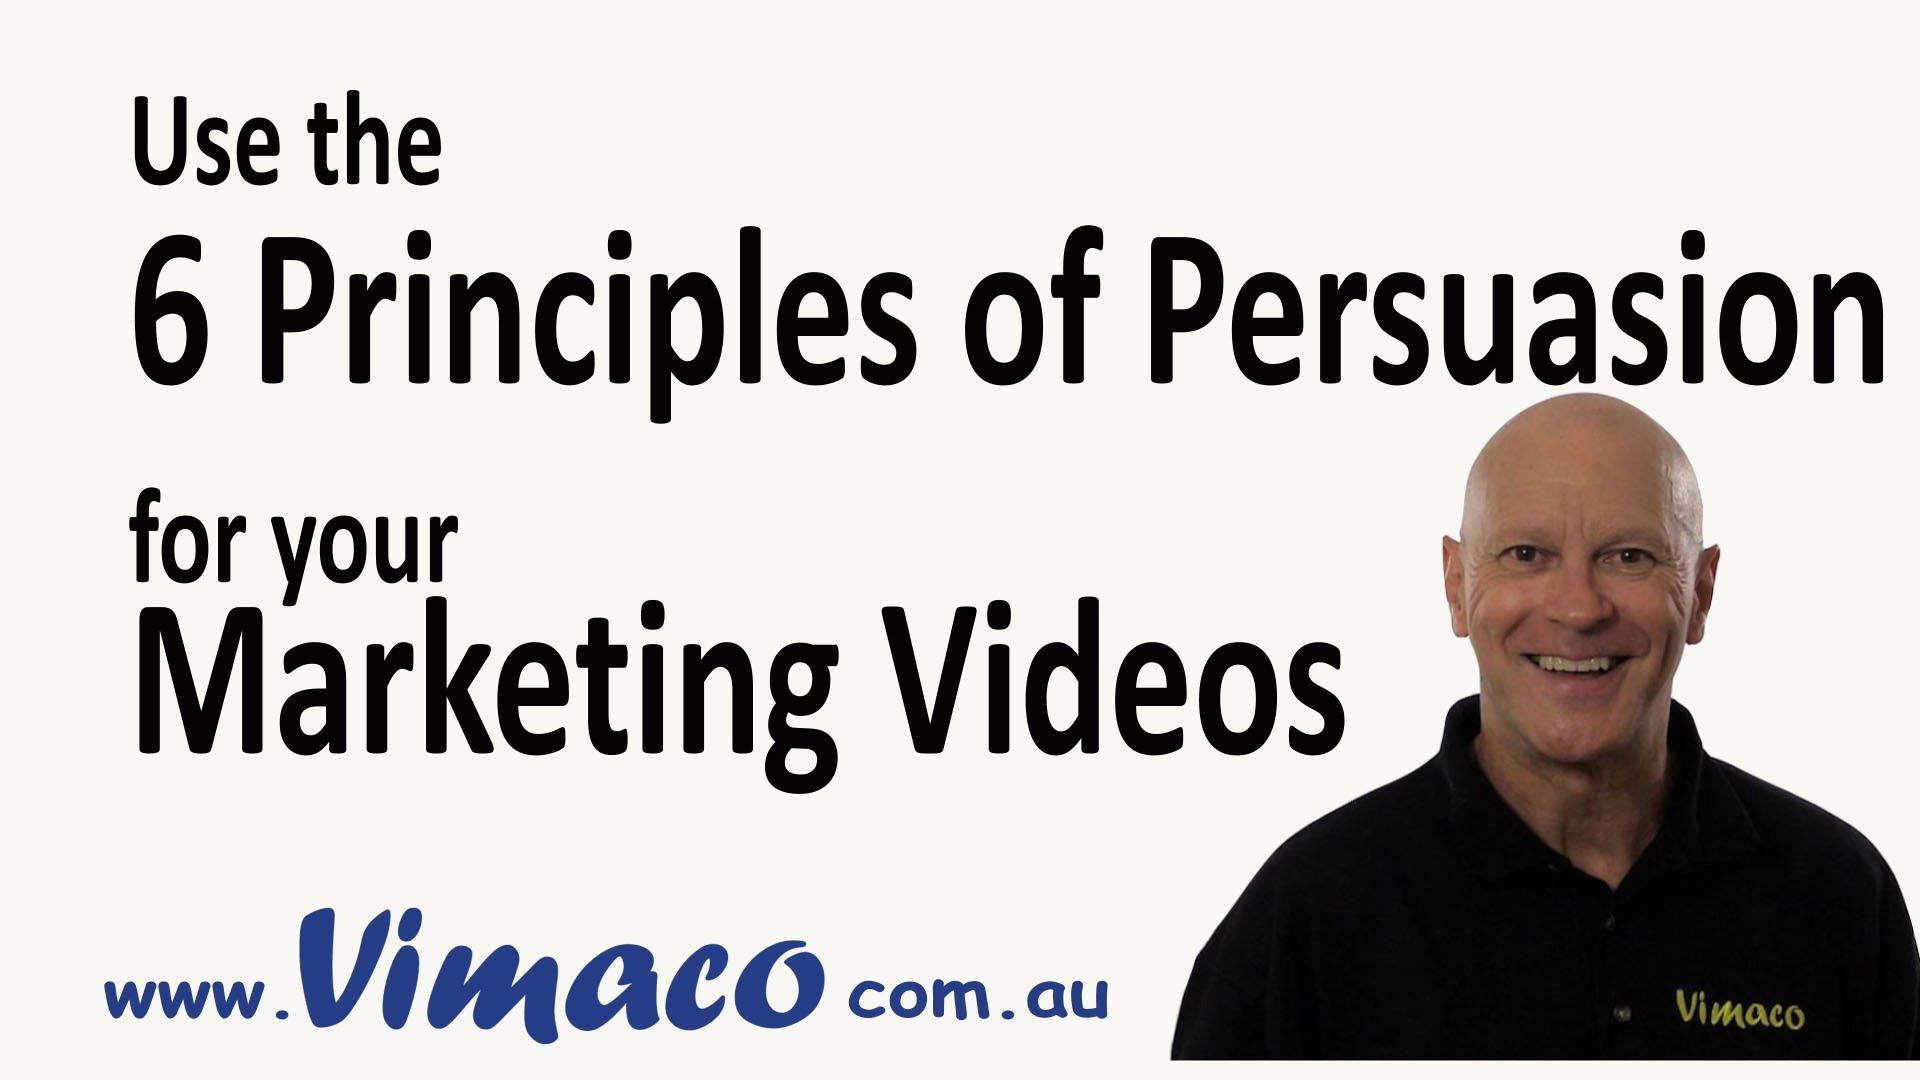 How to apply the 6 Principles of Persuasion in your Video Marketing Strategy